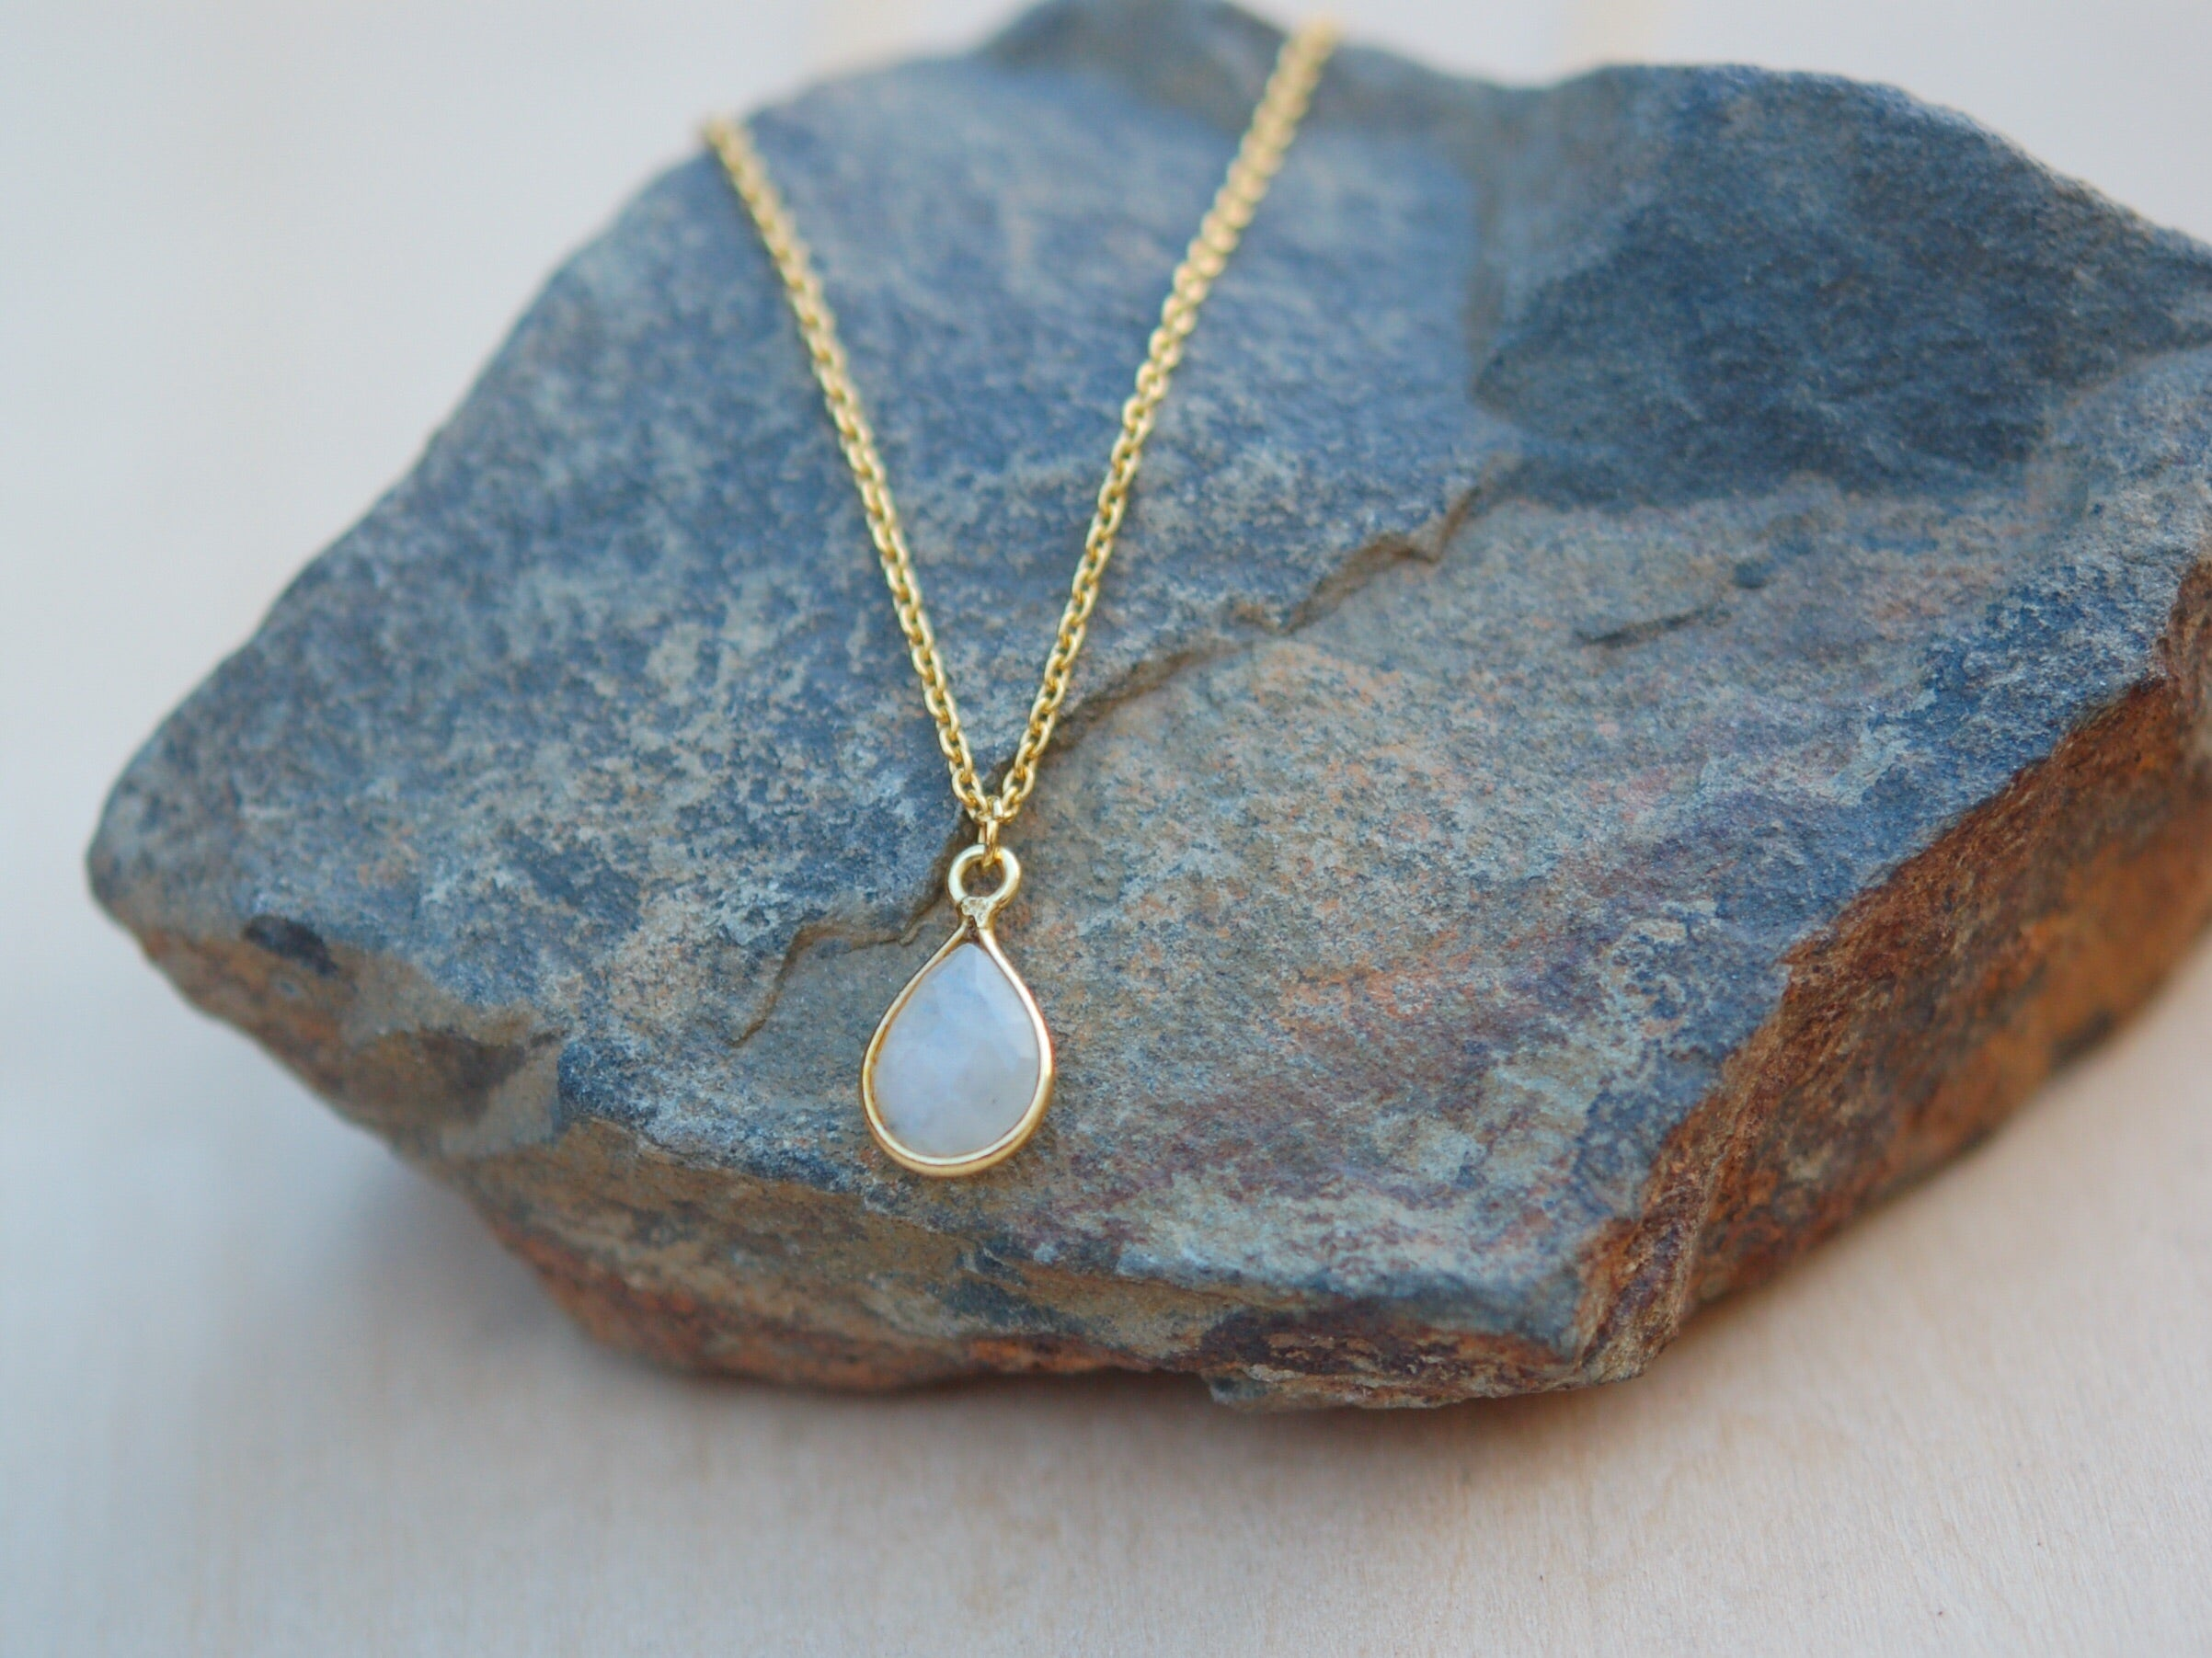 Cape May Necklace